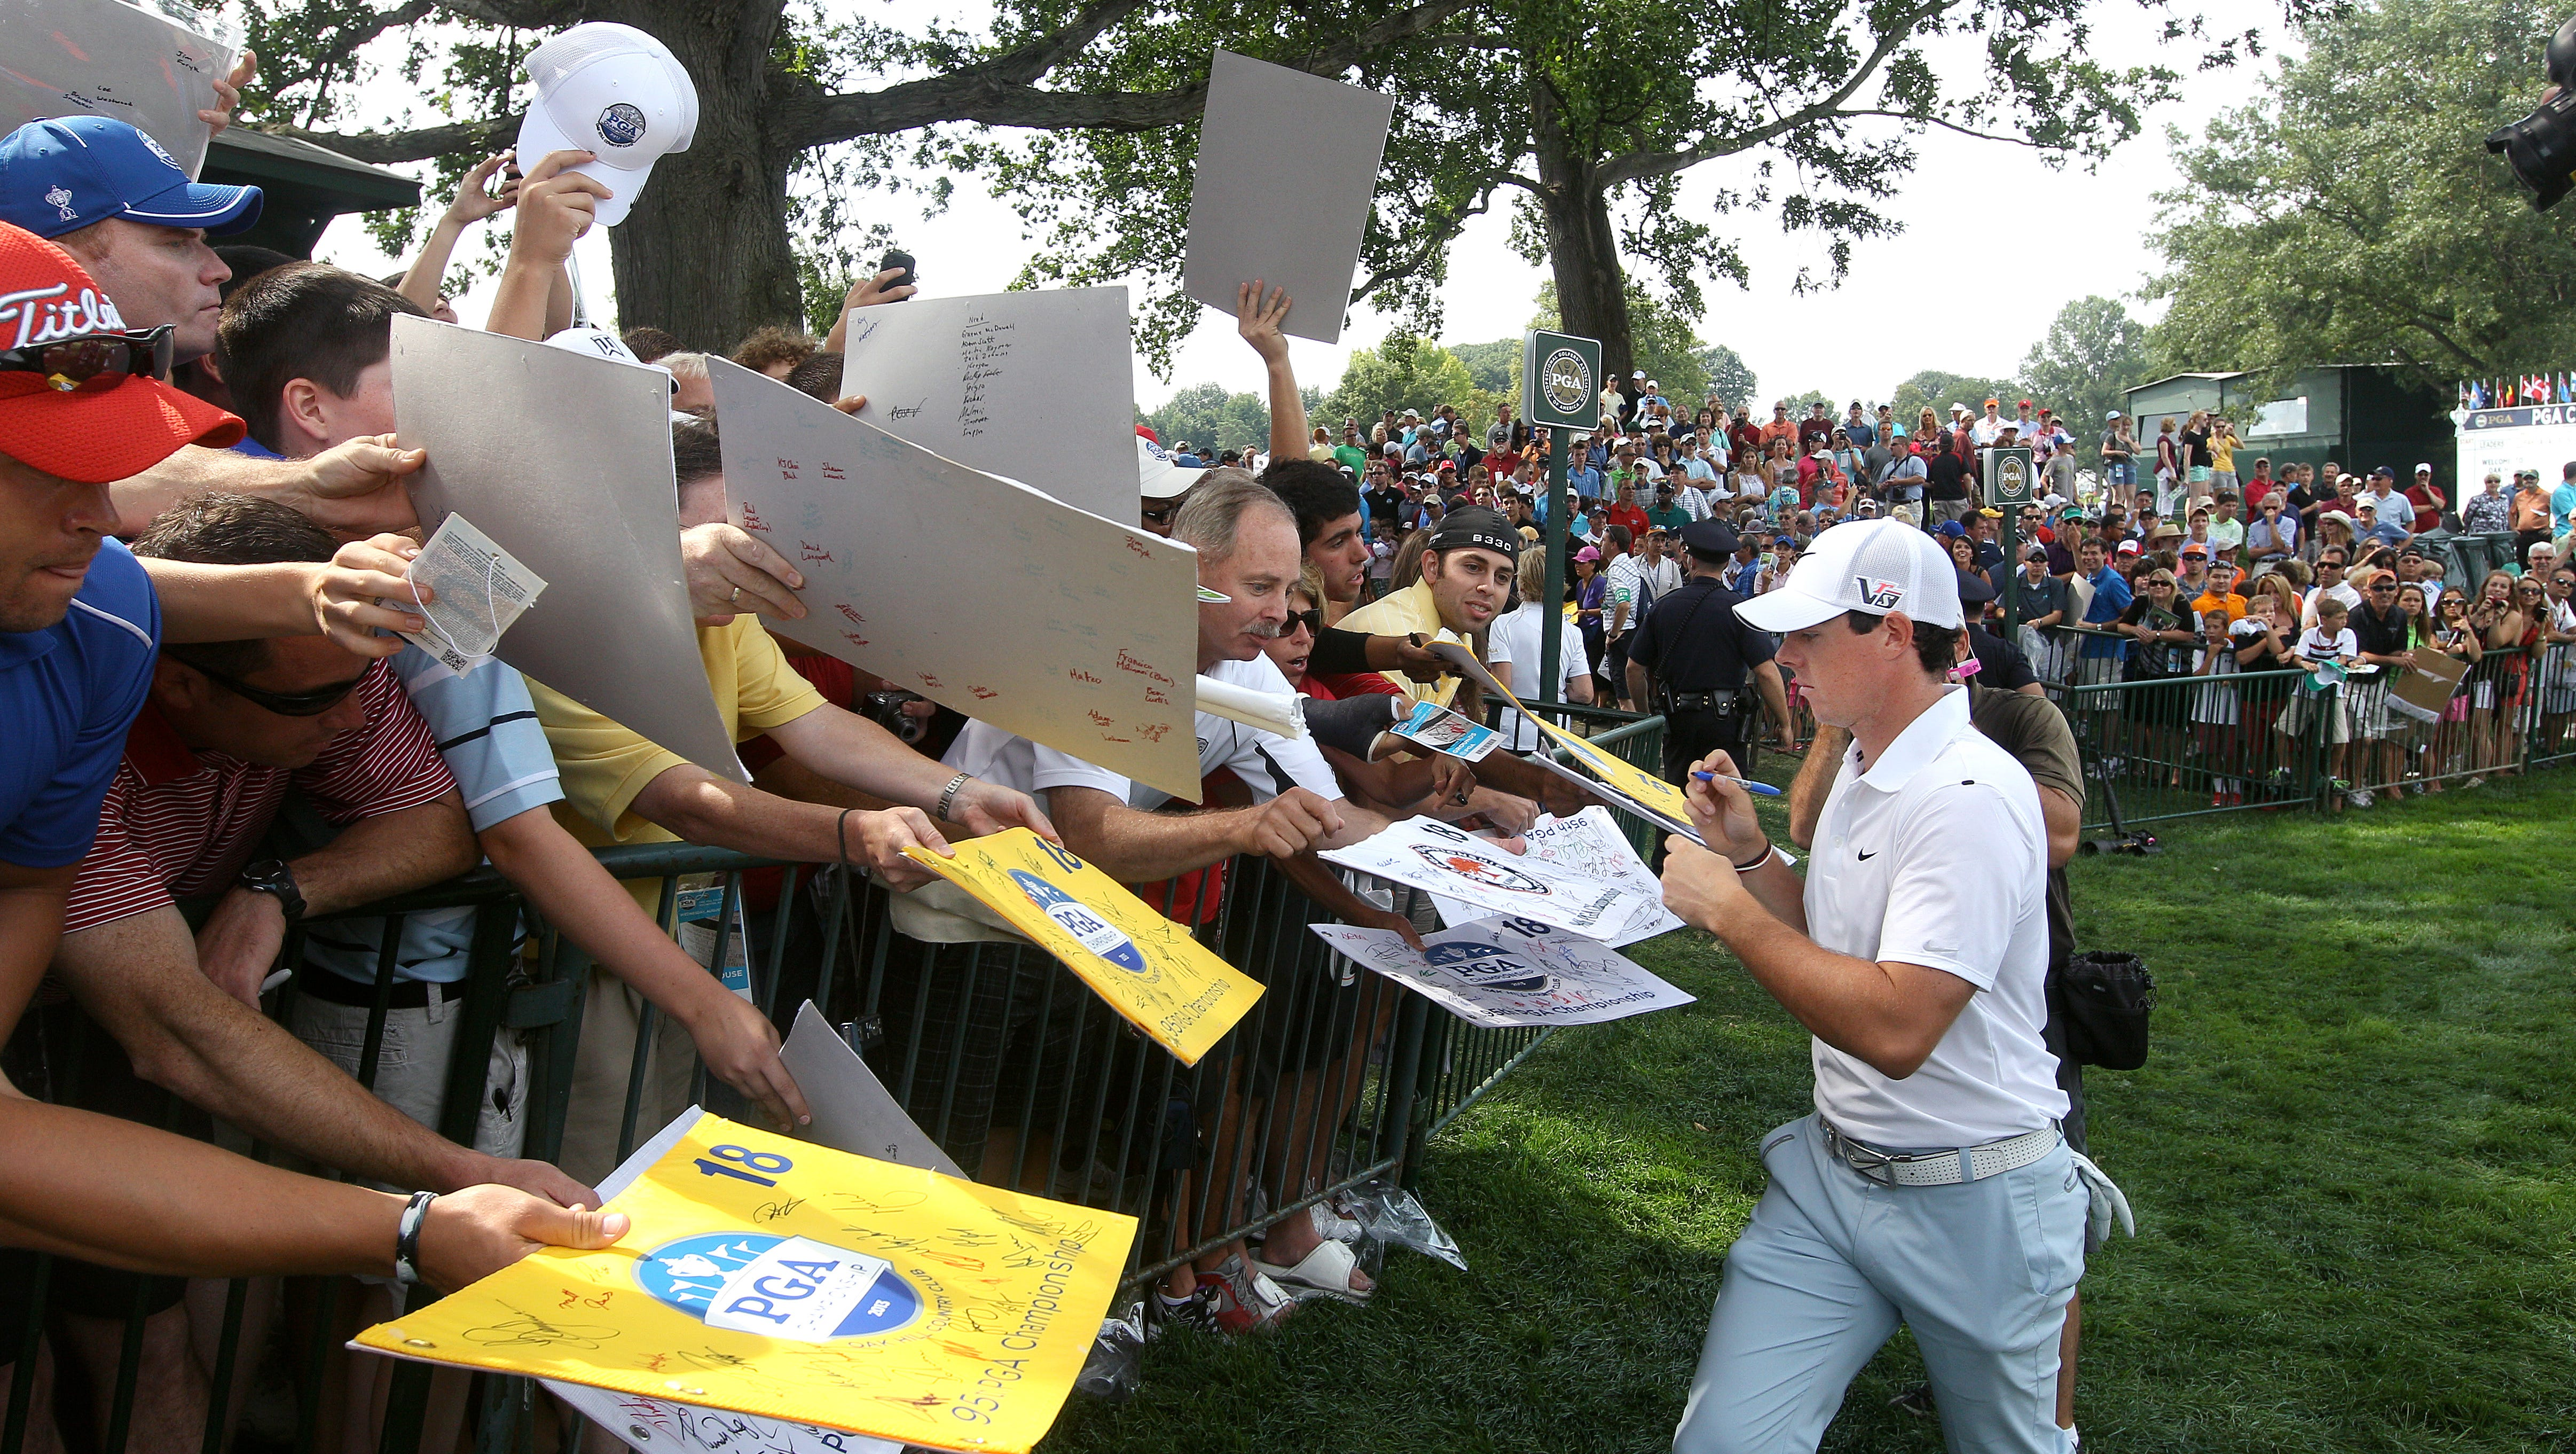 Defending PGA champion Rory McIlroy signs autographs for fans after finishing the 18th hole during a practice round.